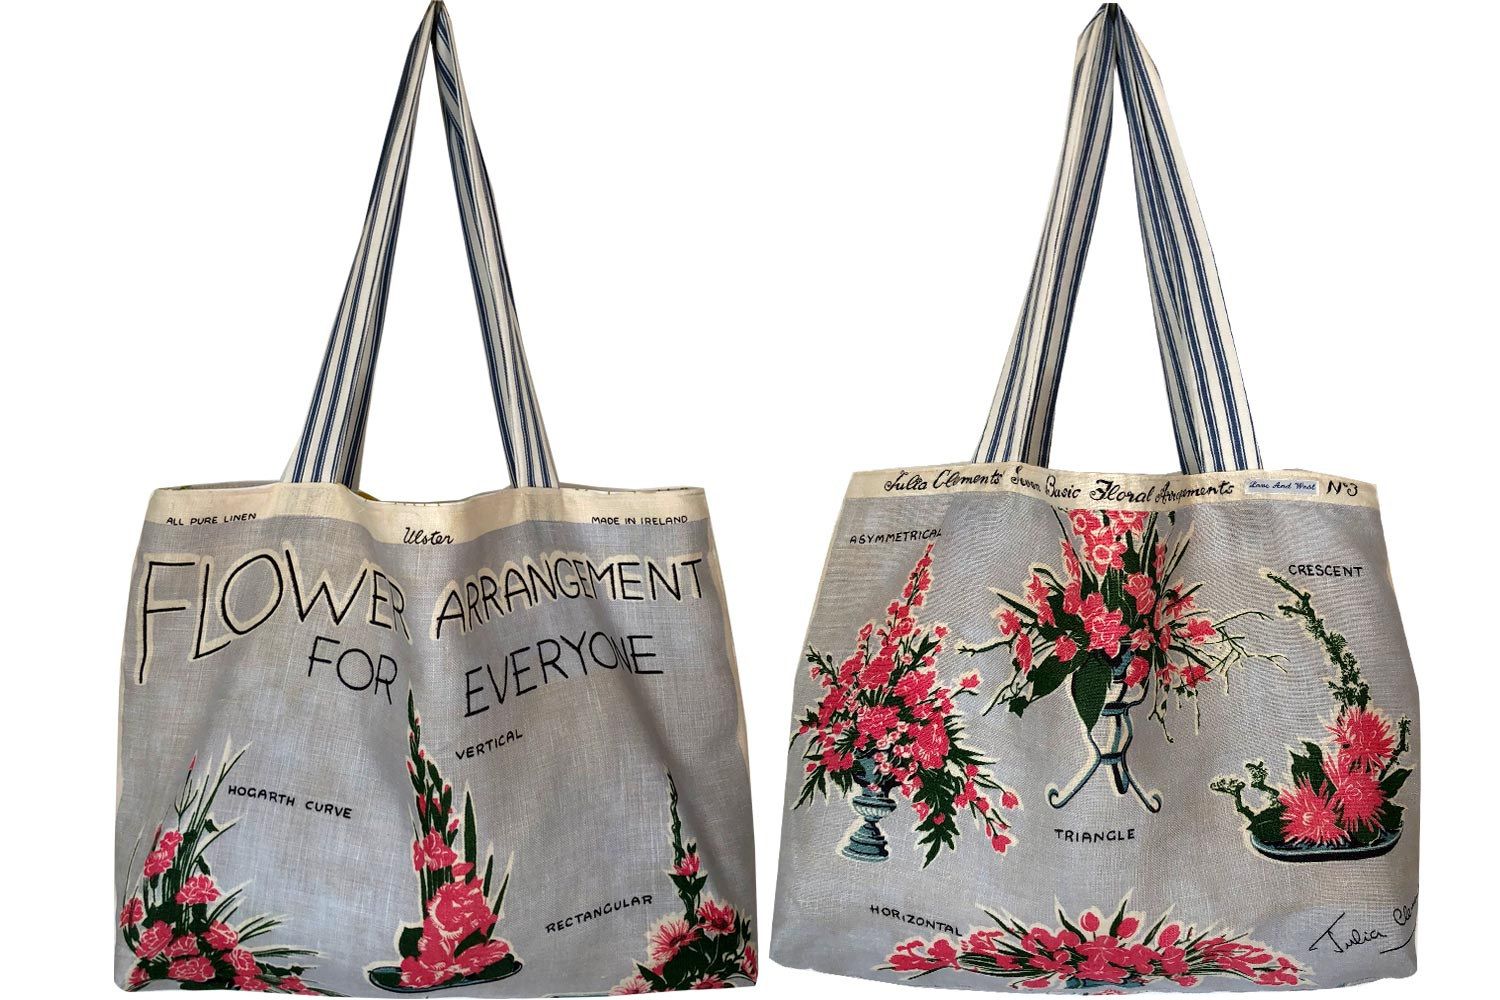 Flower arranging for everyone vintage linen teatowel tote